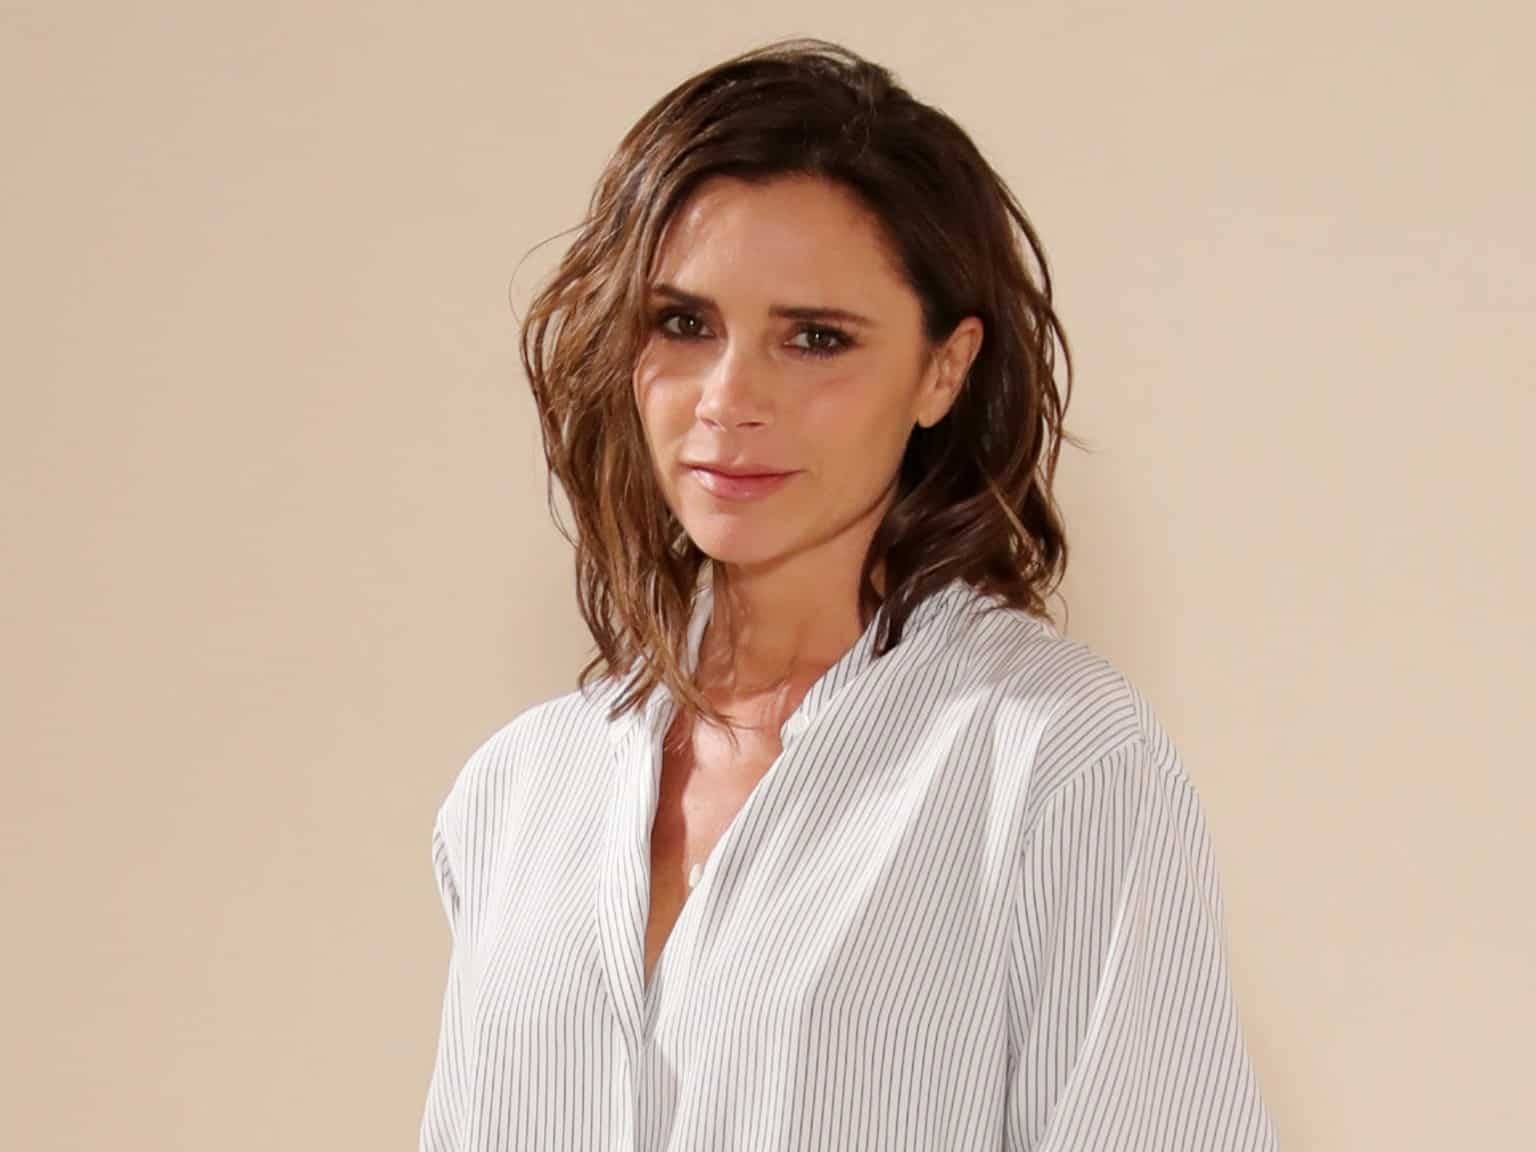 Victoria Beckham Plastic Surgery Before And After Photos